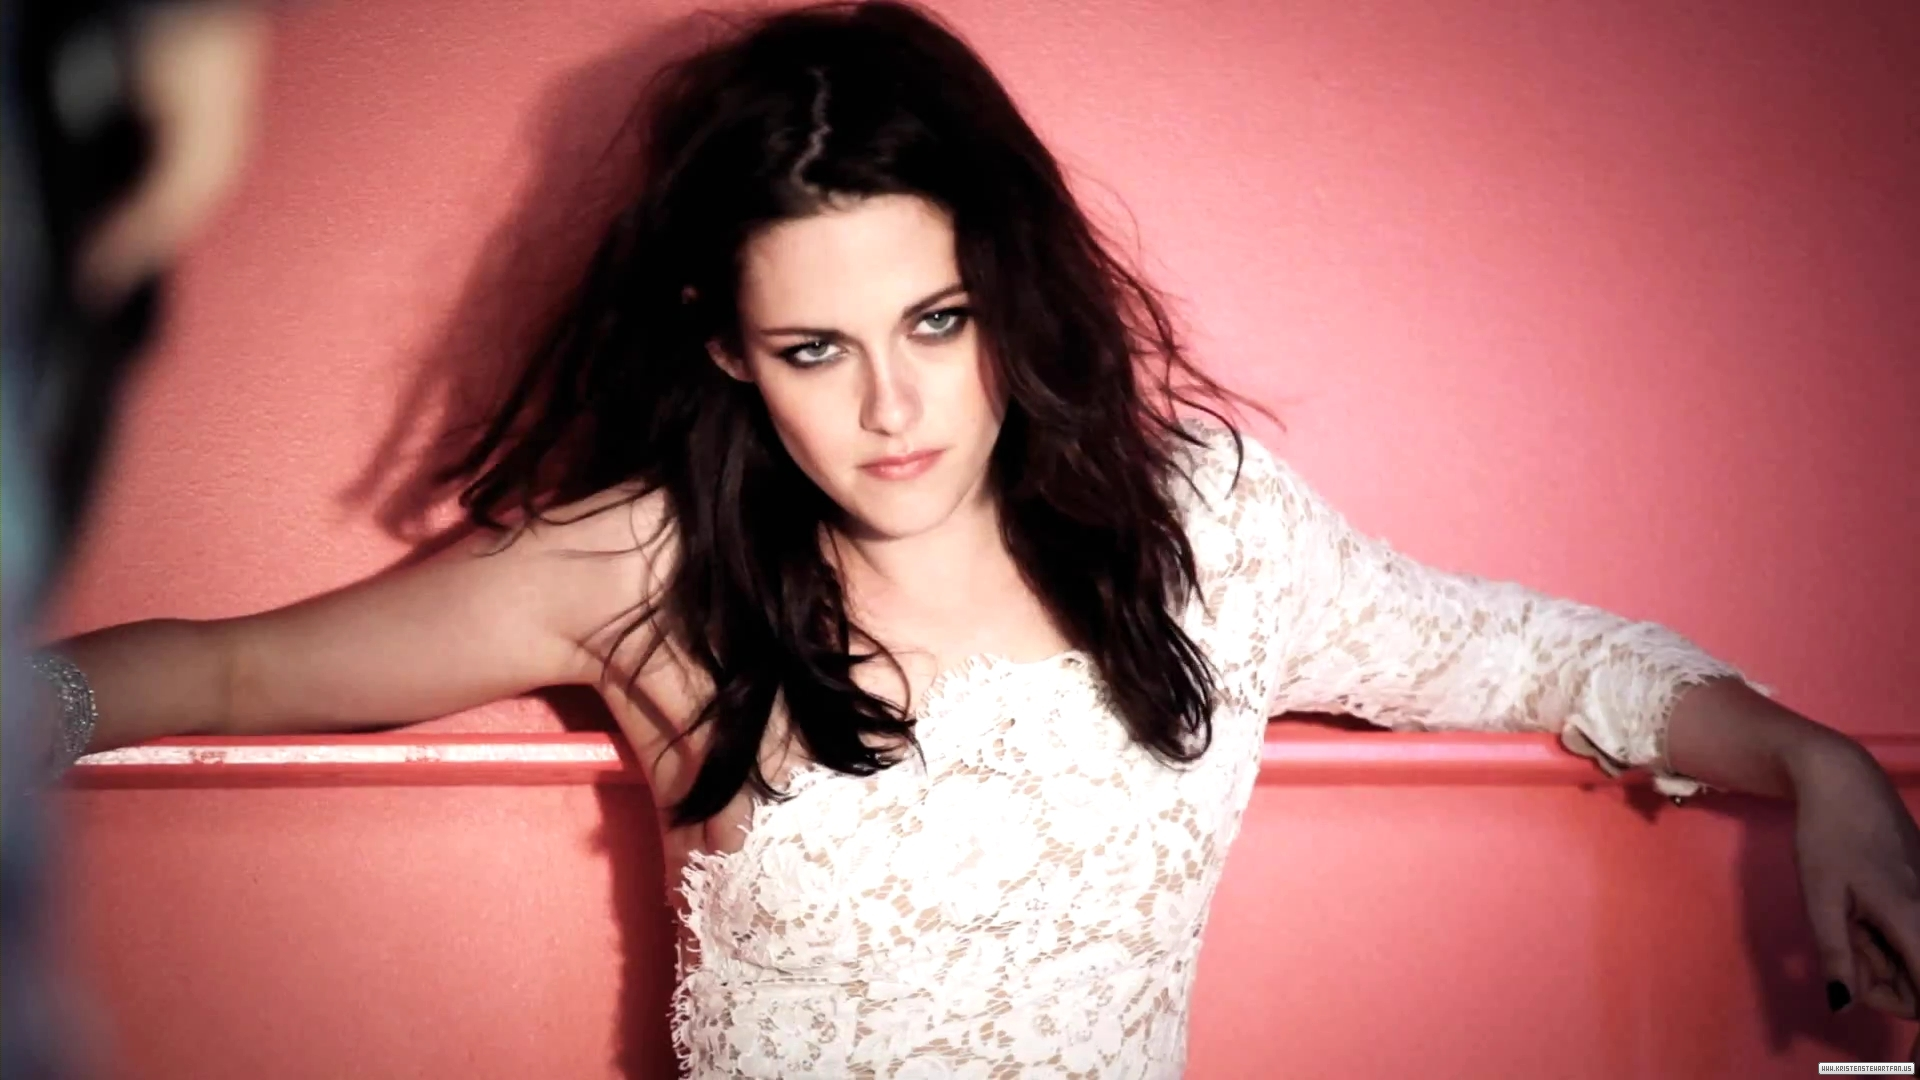 Kristen Stewart Images Video Captures Glamour Behind The Scenes Hd Wallpaper And Background Photos